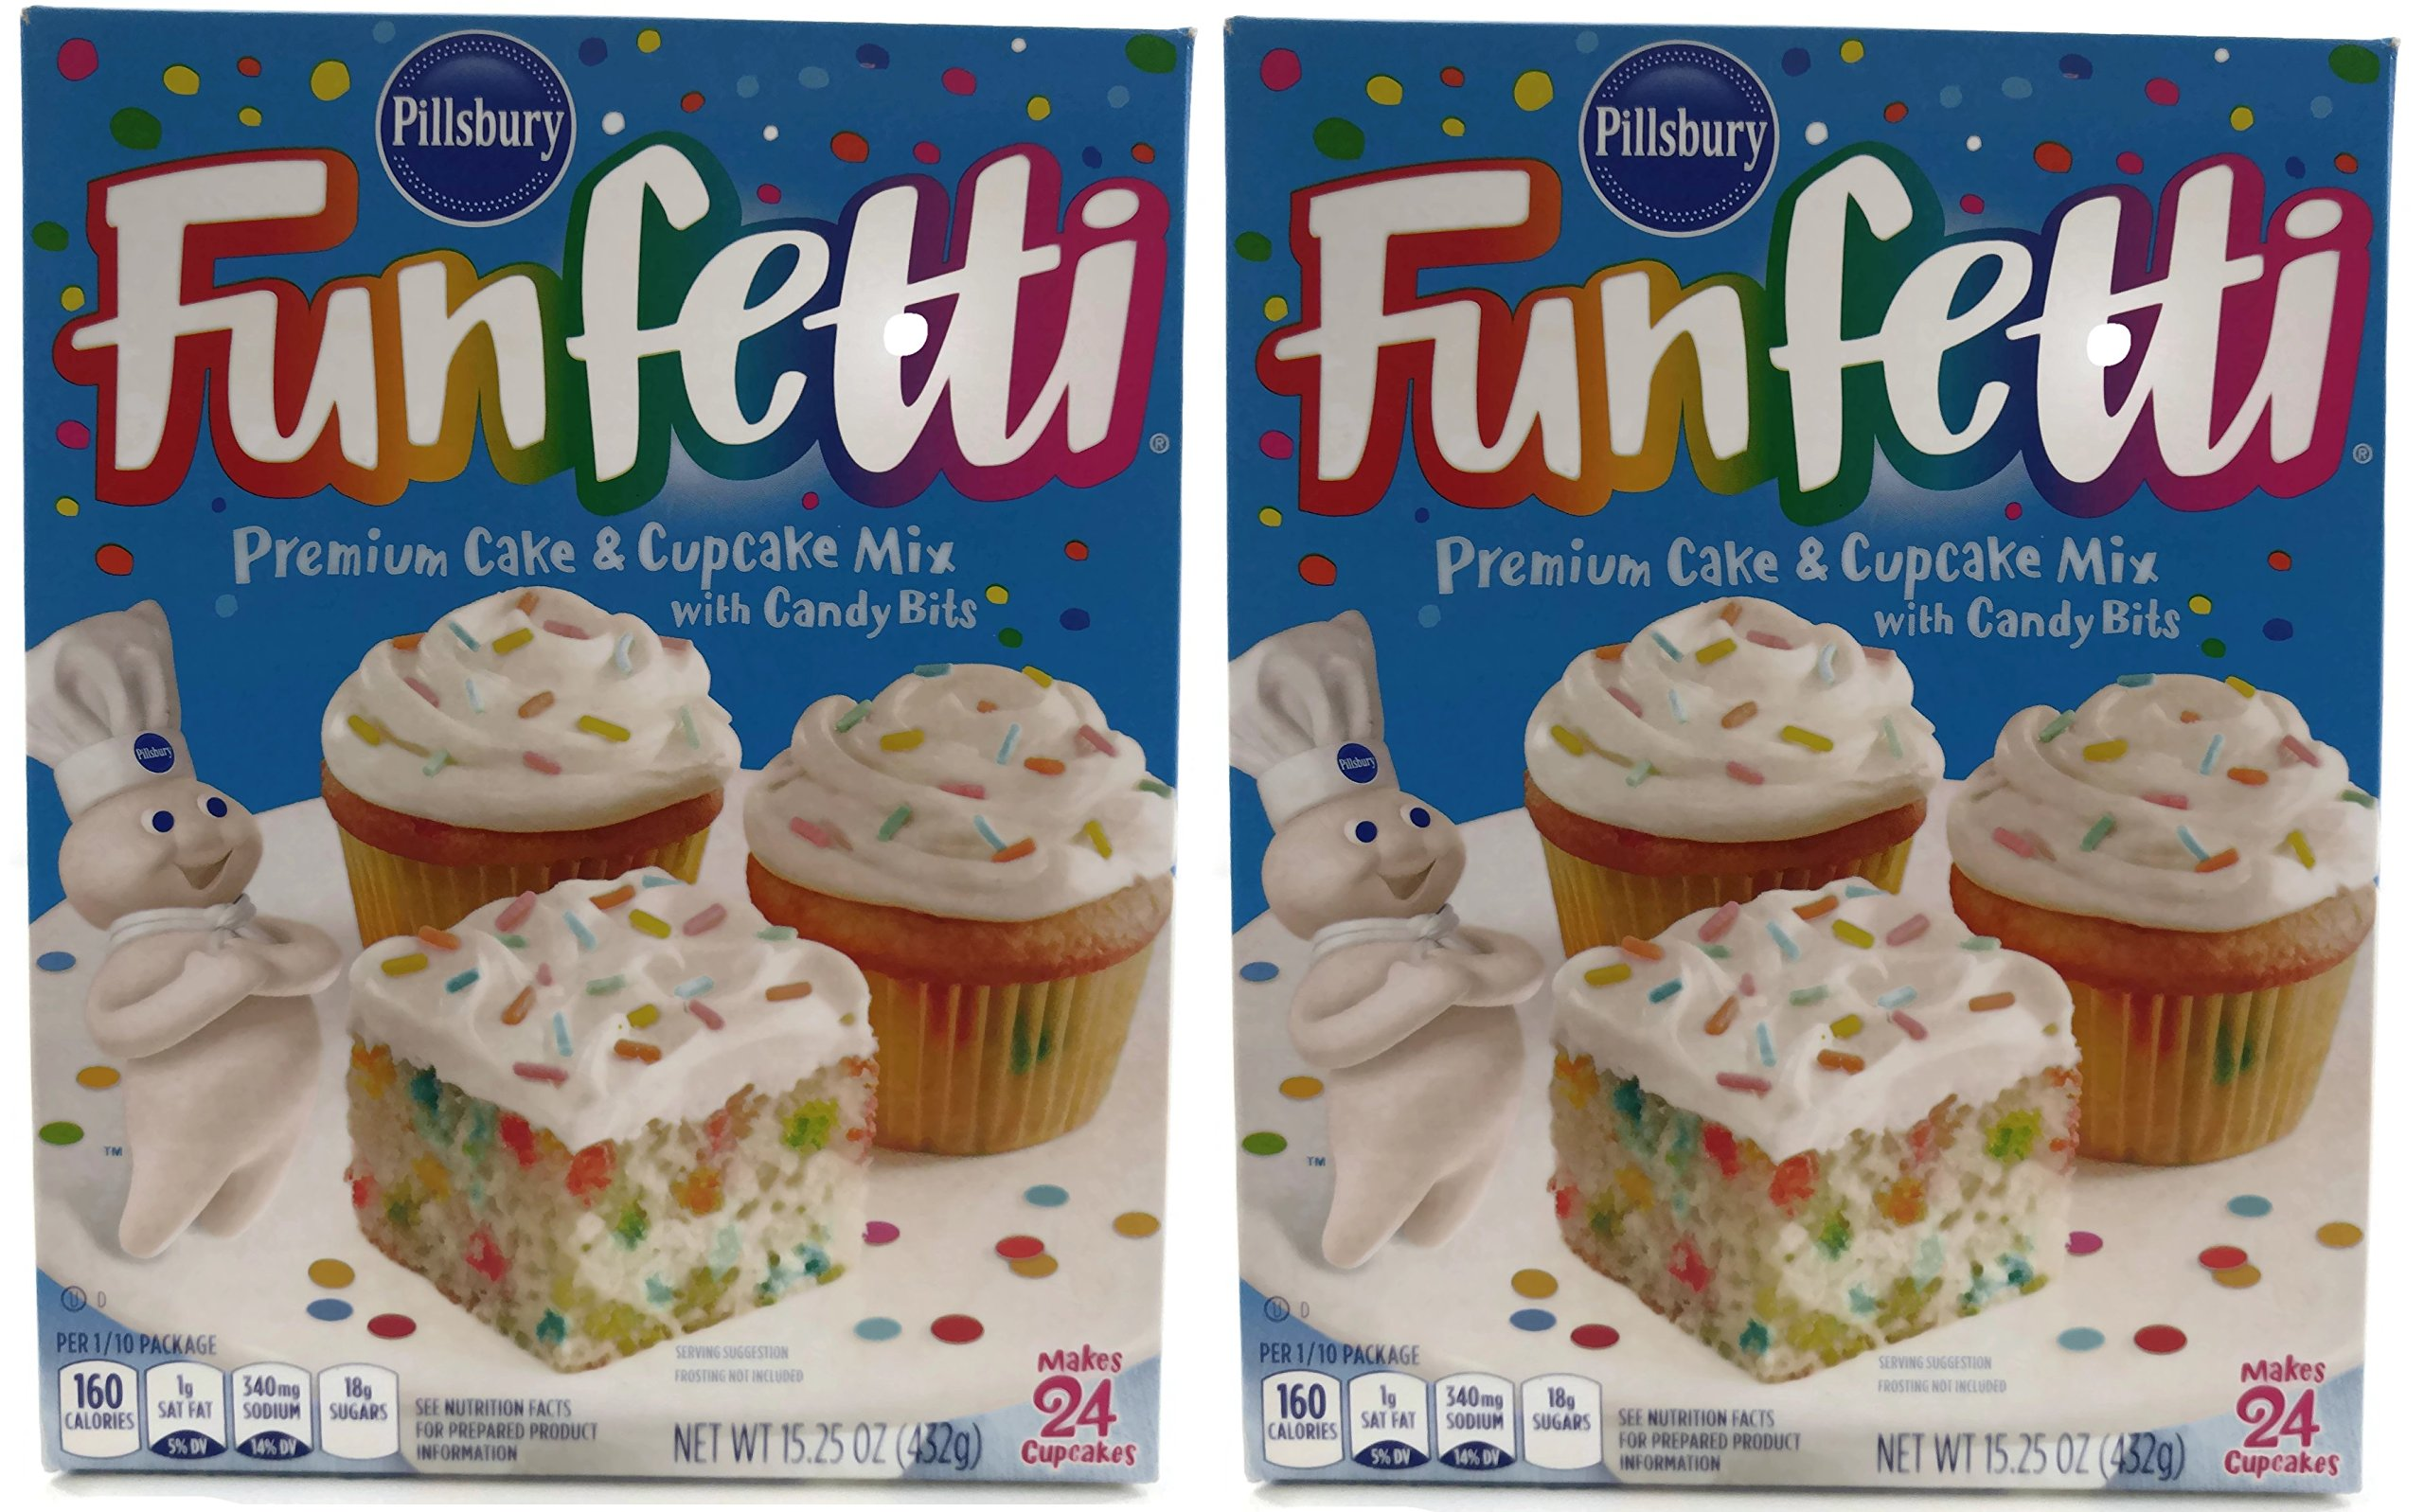 Pillsbury Funfetti Cake Mix - 15.25 oz - 2 pk